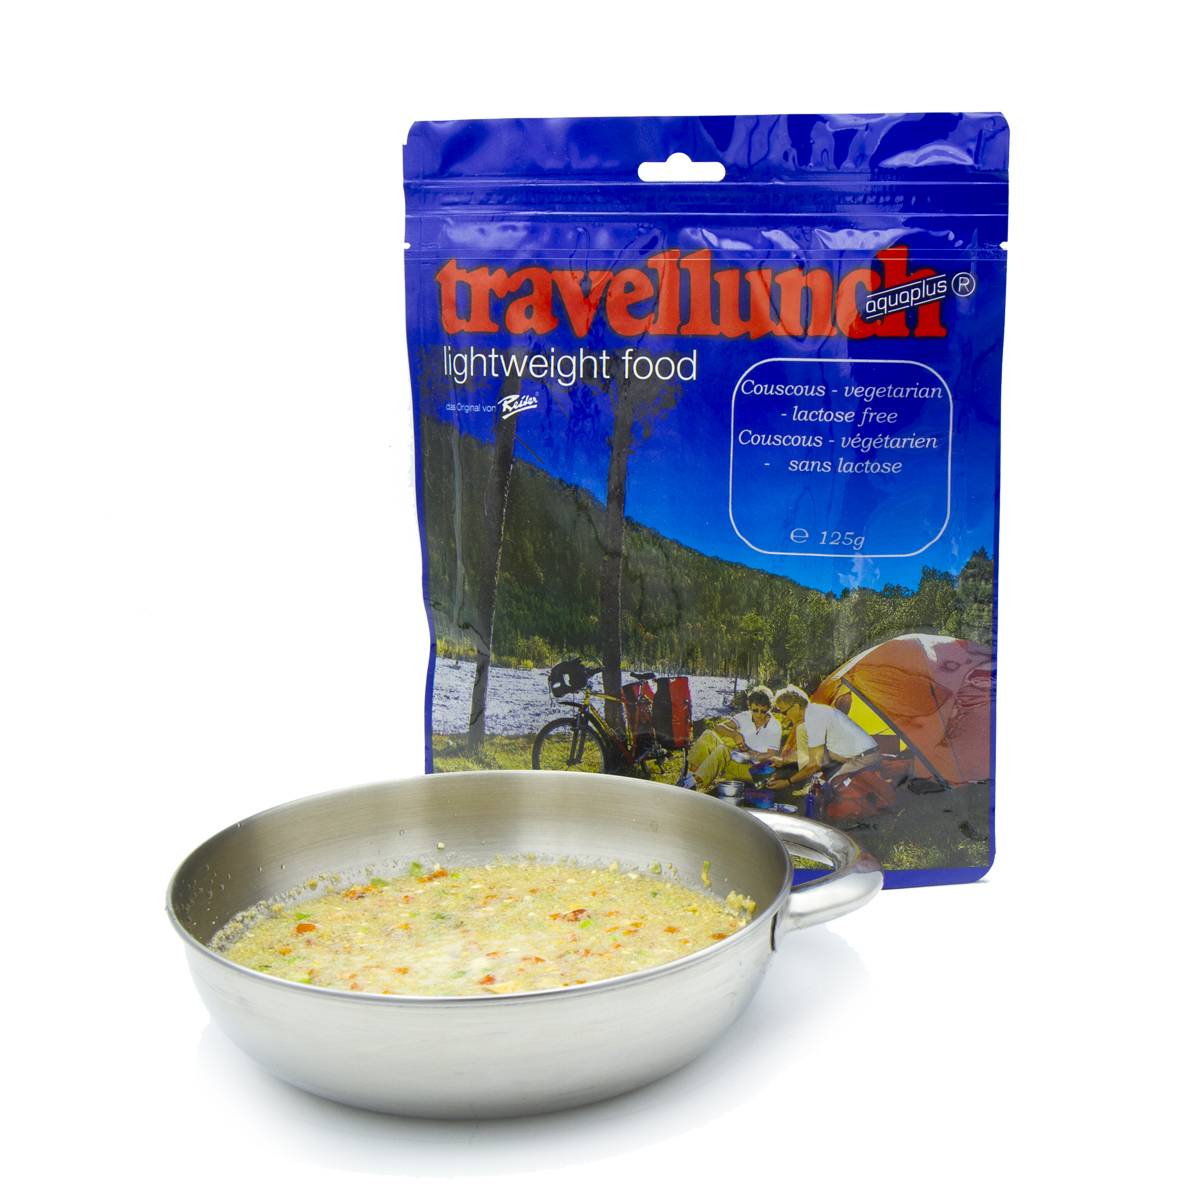 51153_travellunch-couscous_veg_lac_free